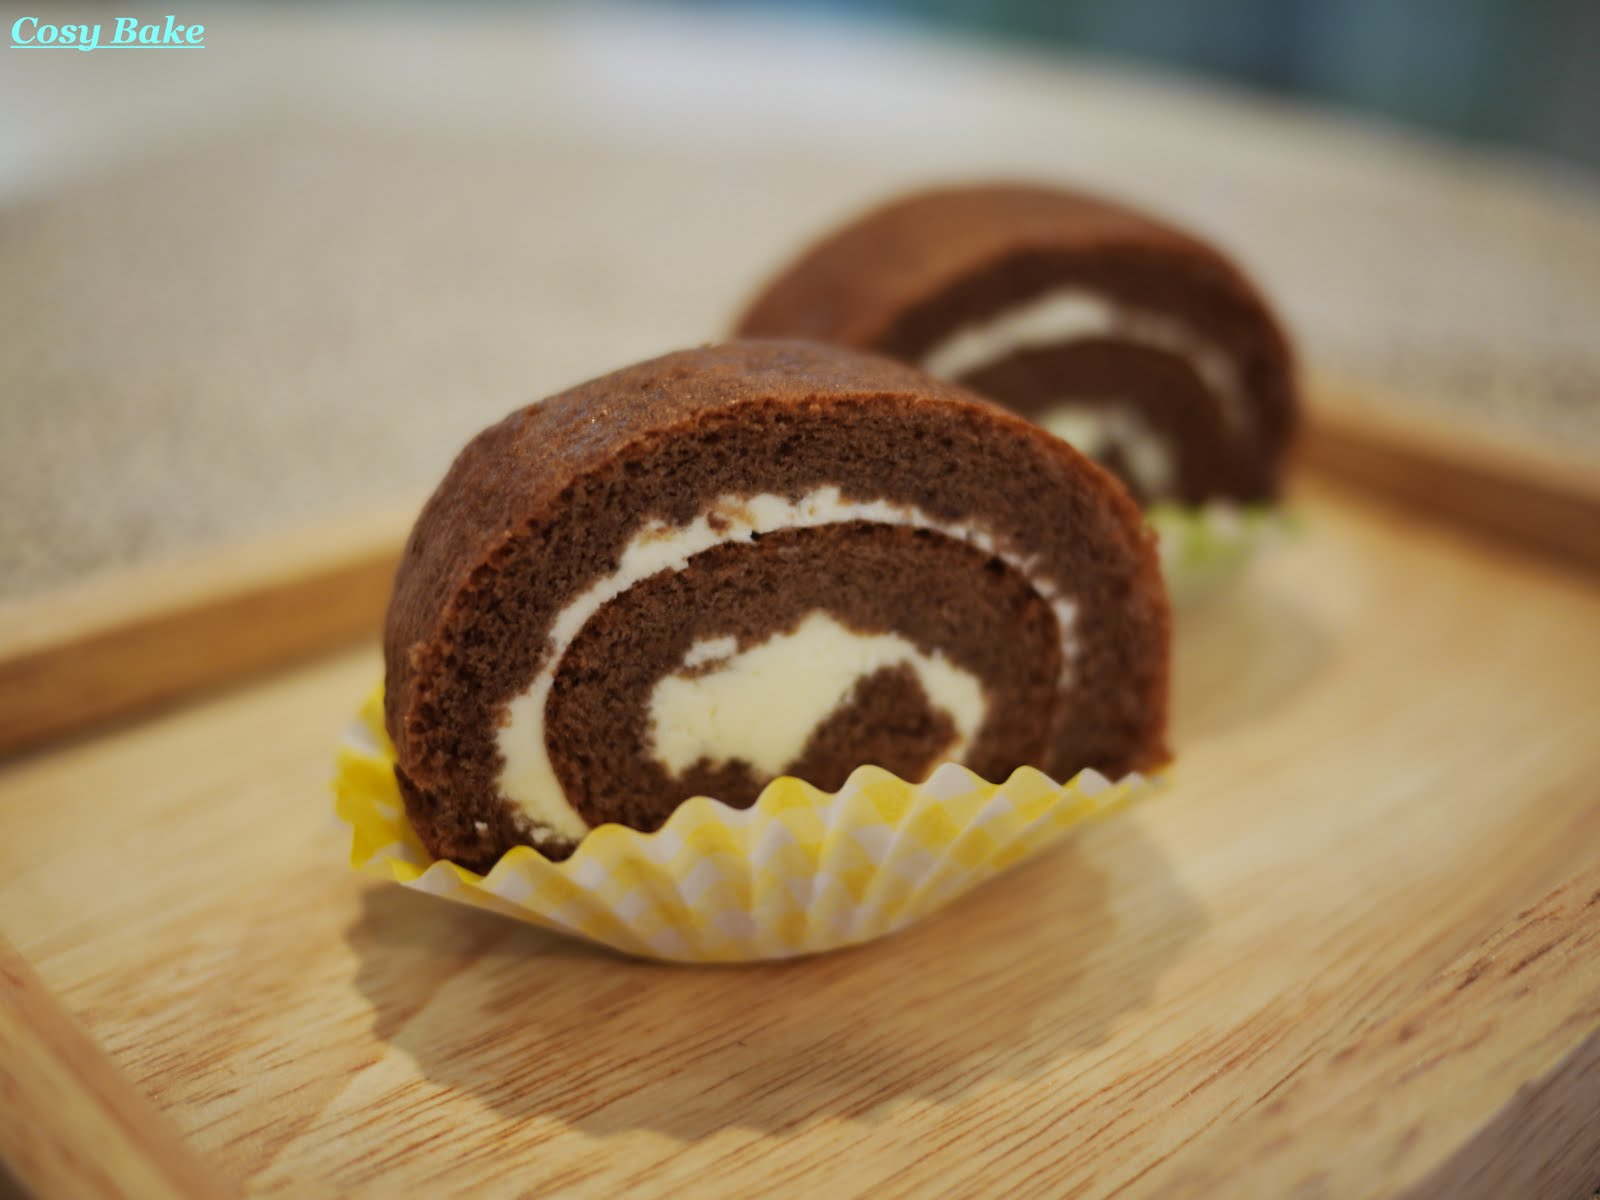 Chocolate Rolls For Cake Decorating